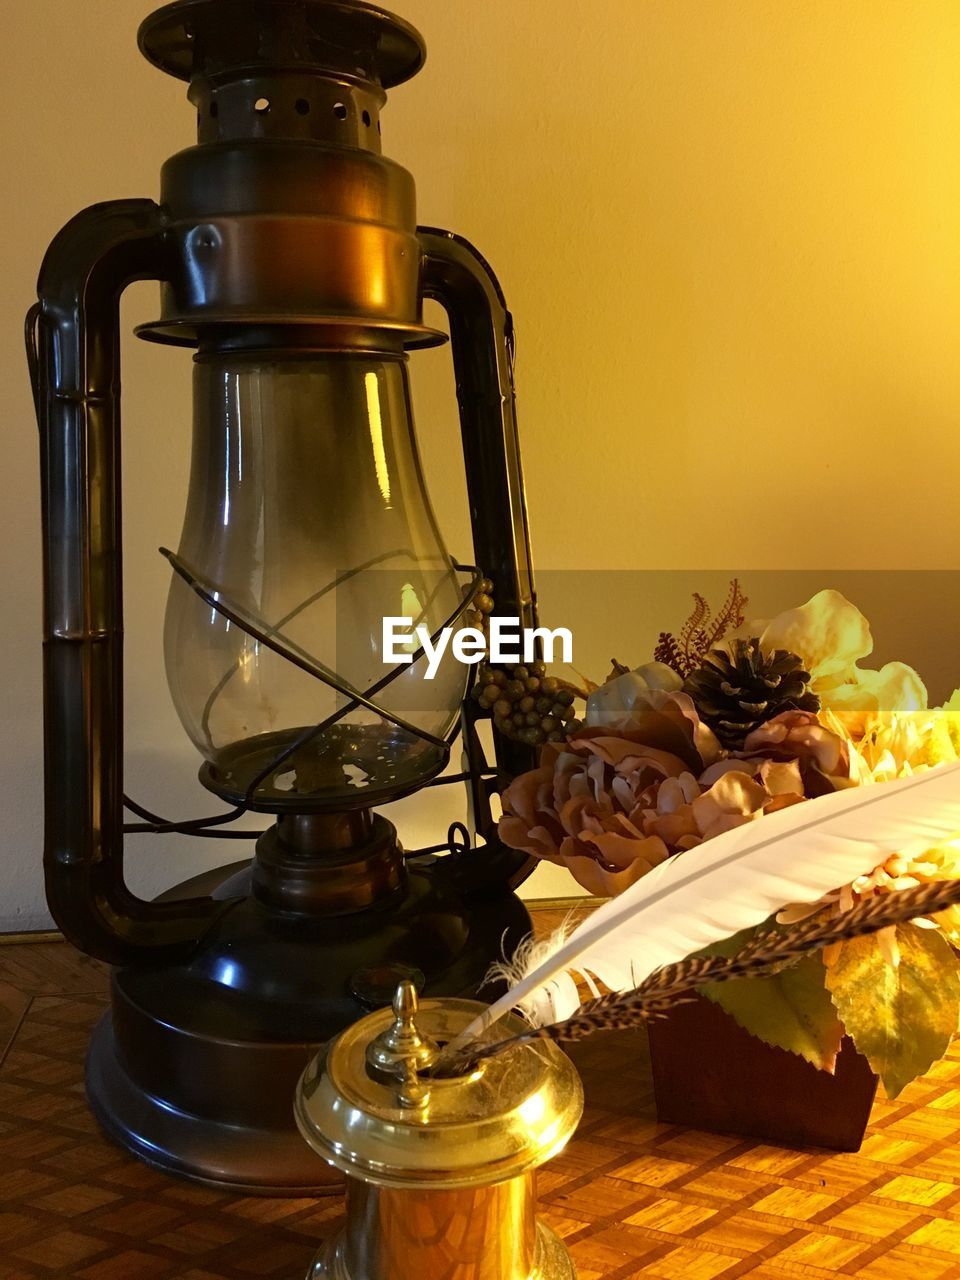 Old-fashioned lantern by artificial flowers on table